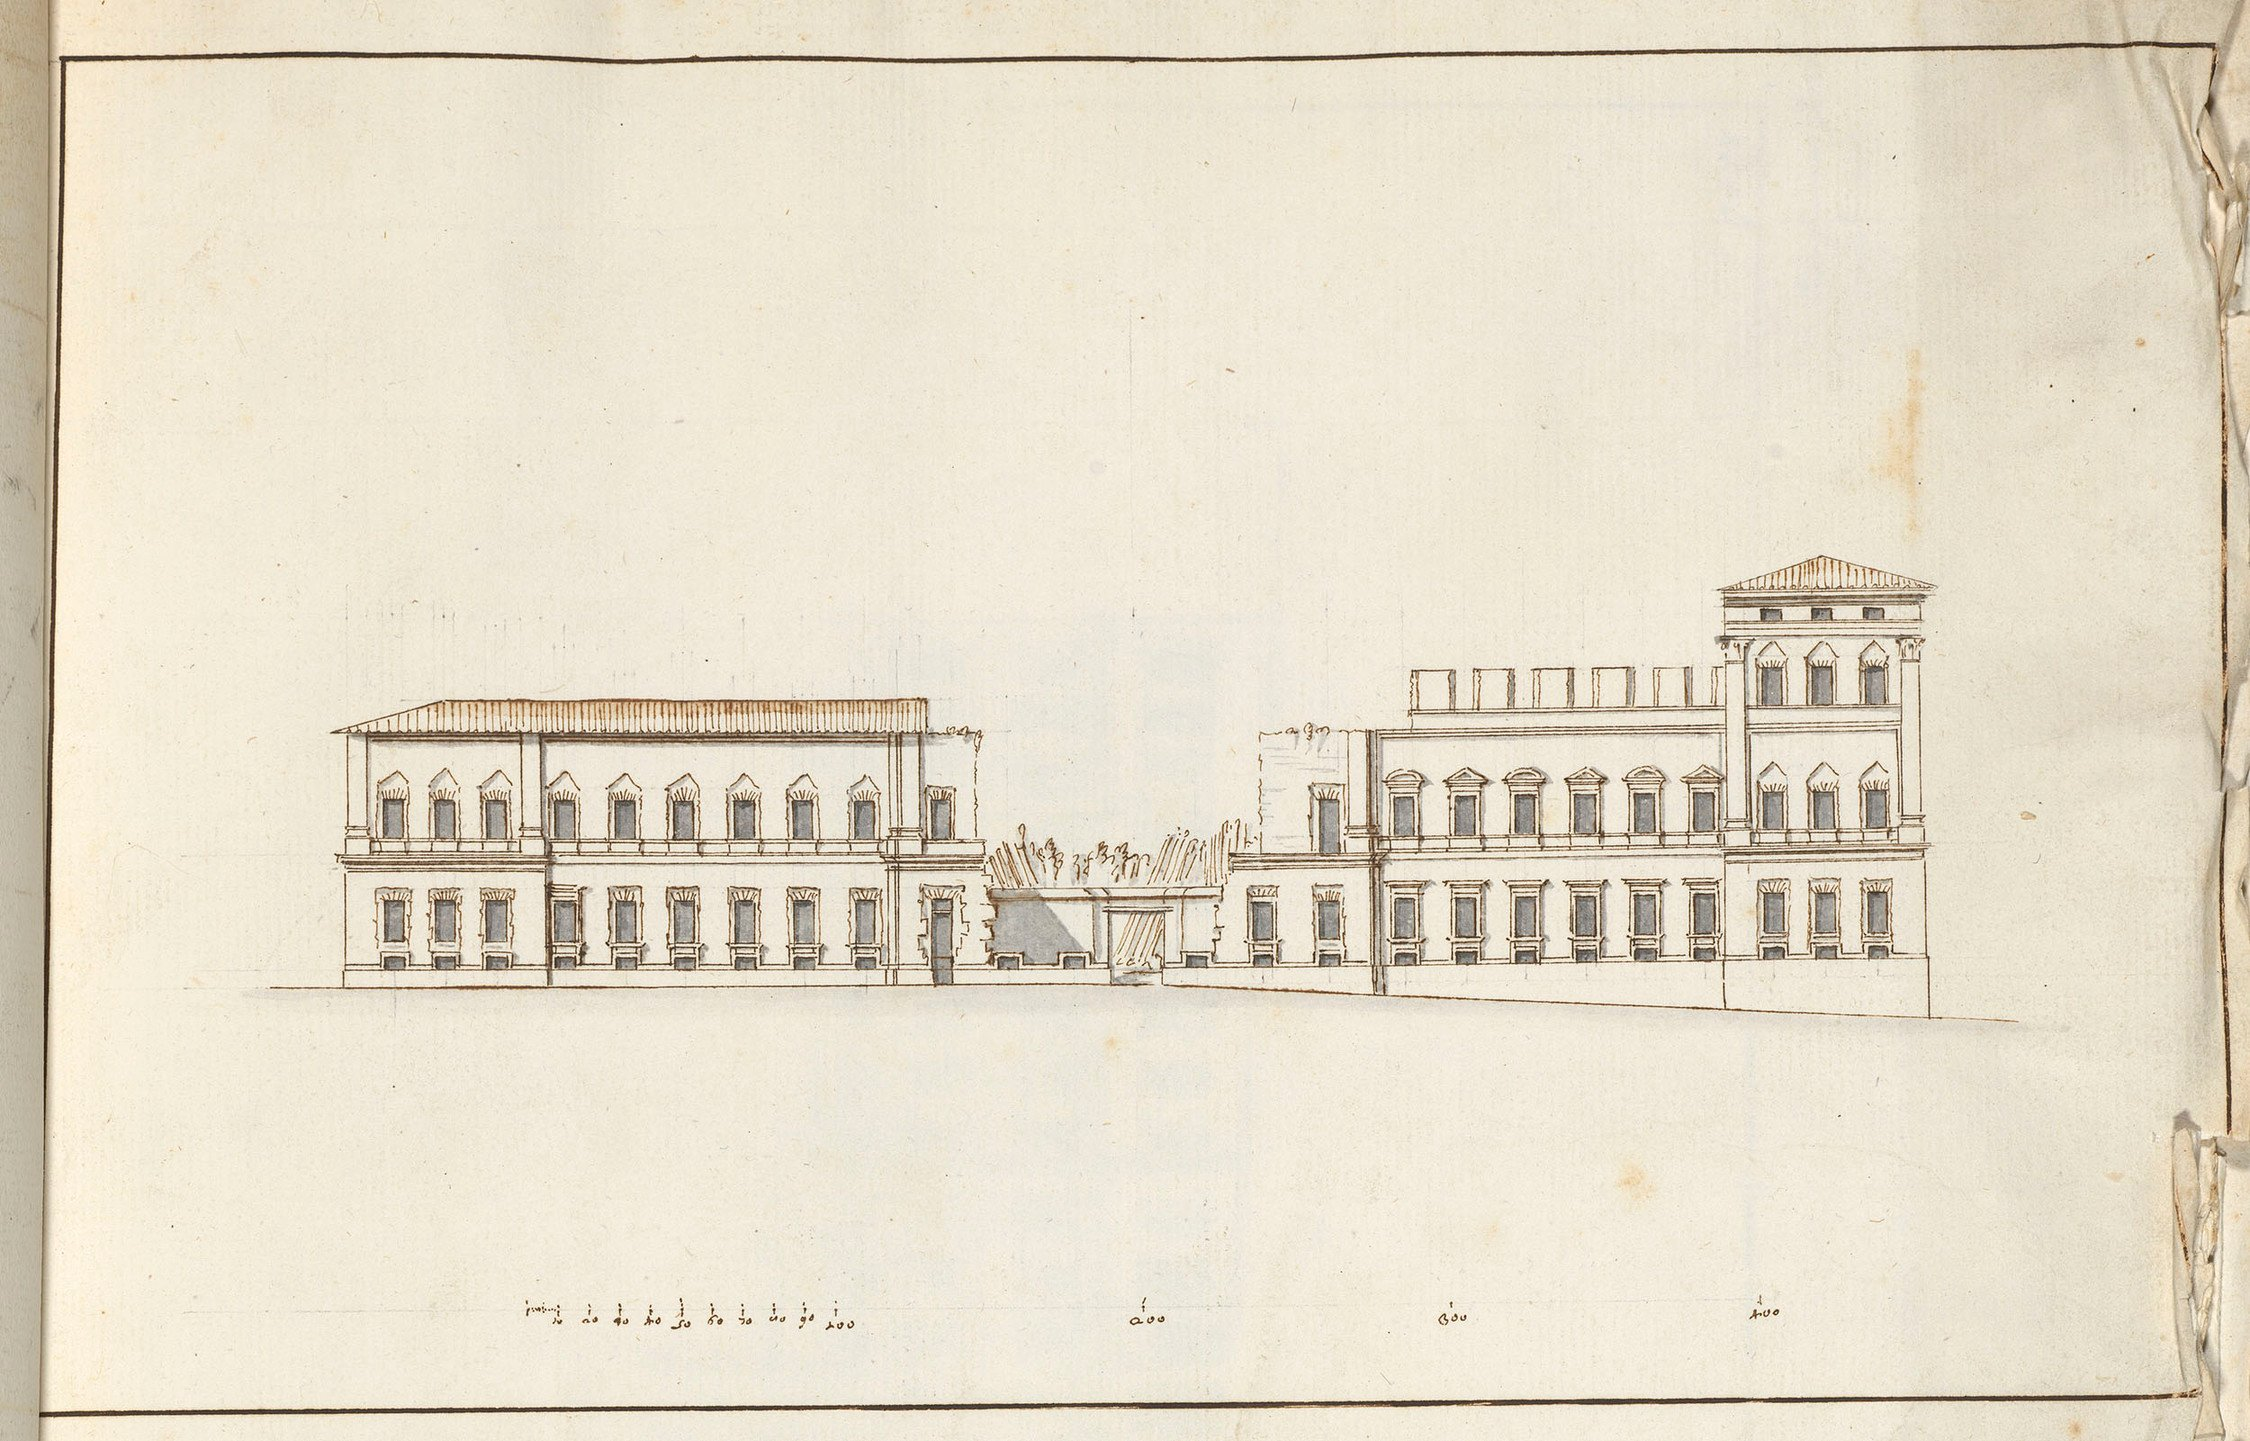 Fontana, Carlo. Elevation of a building in an unfinished state, 16--.